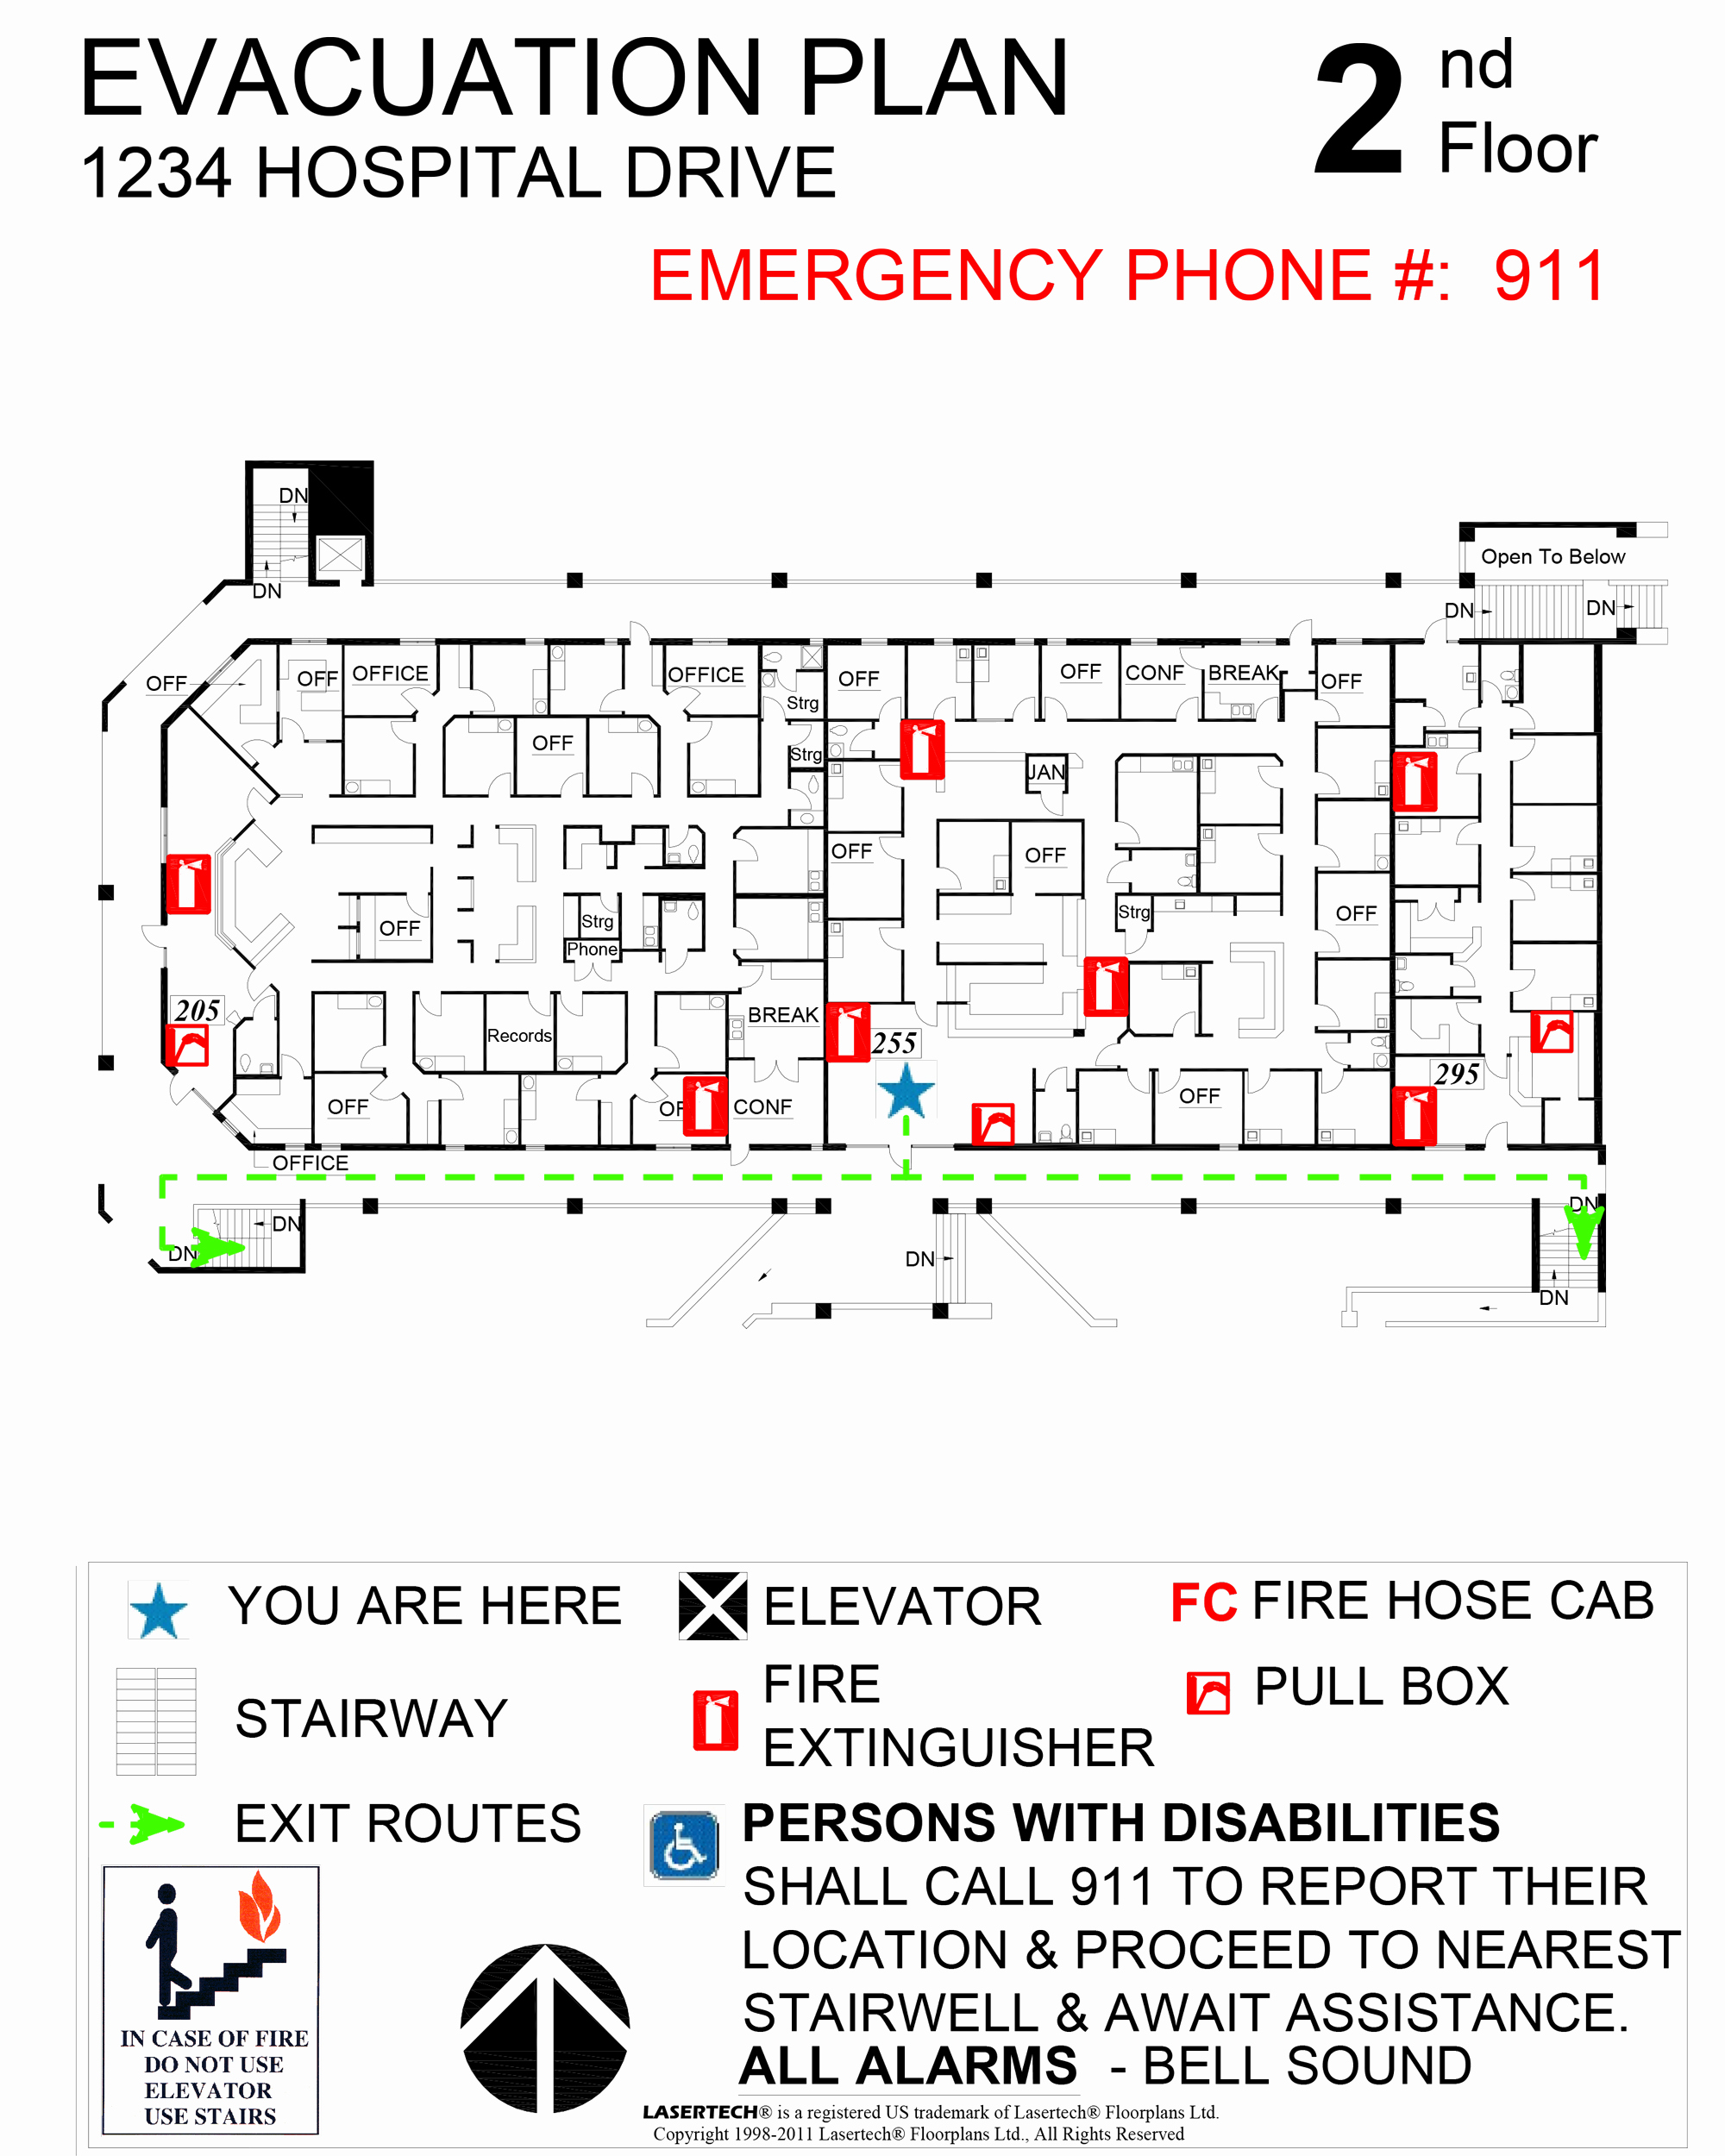 Sample Emergency Evacuation Plan Template Best Of Emergency Evacuation Plans Lasertech Floorplans